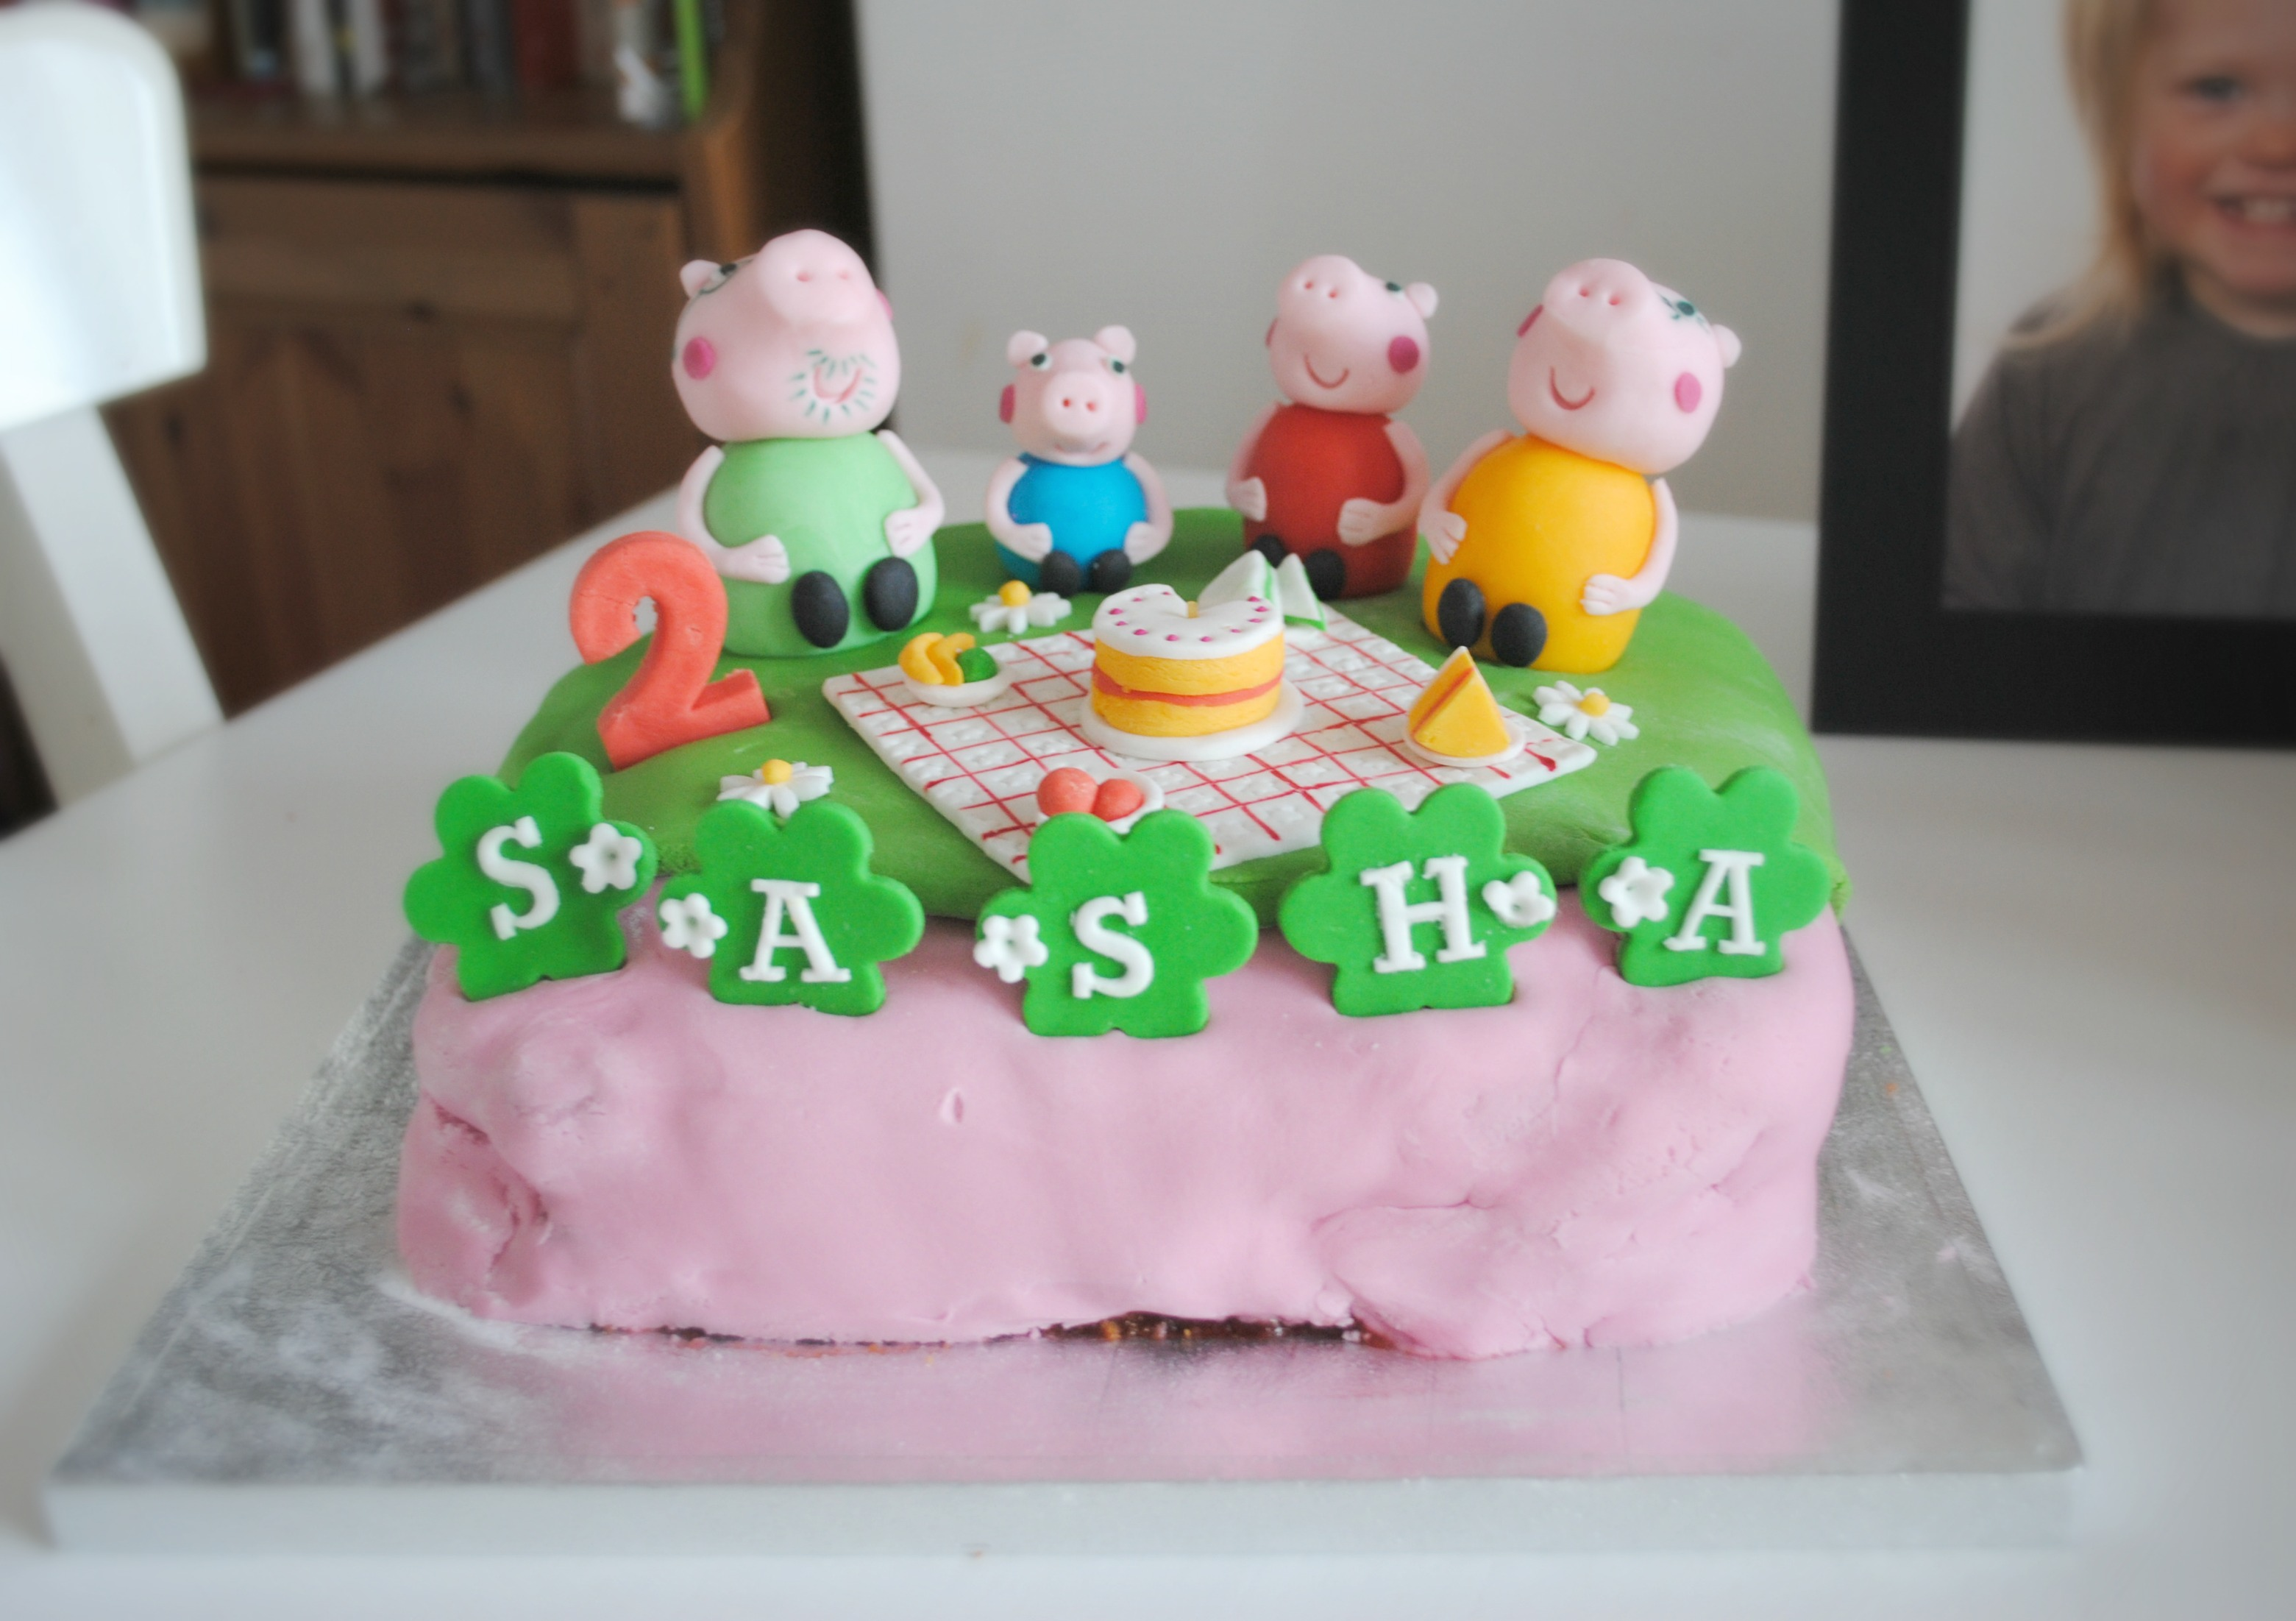 How To Make An Easy Peppa Pig Birthday Cake The Spirited Puddle Jumper